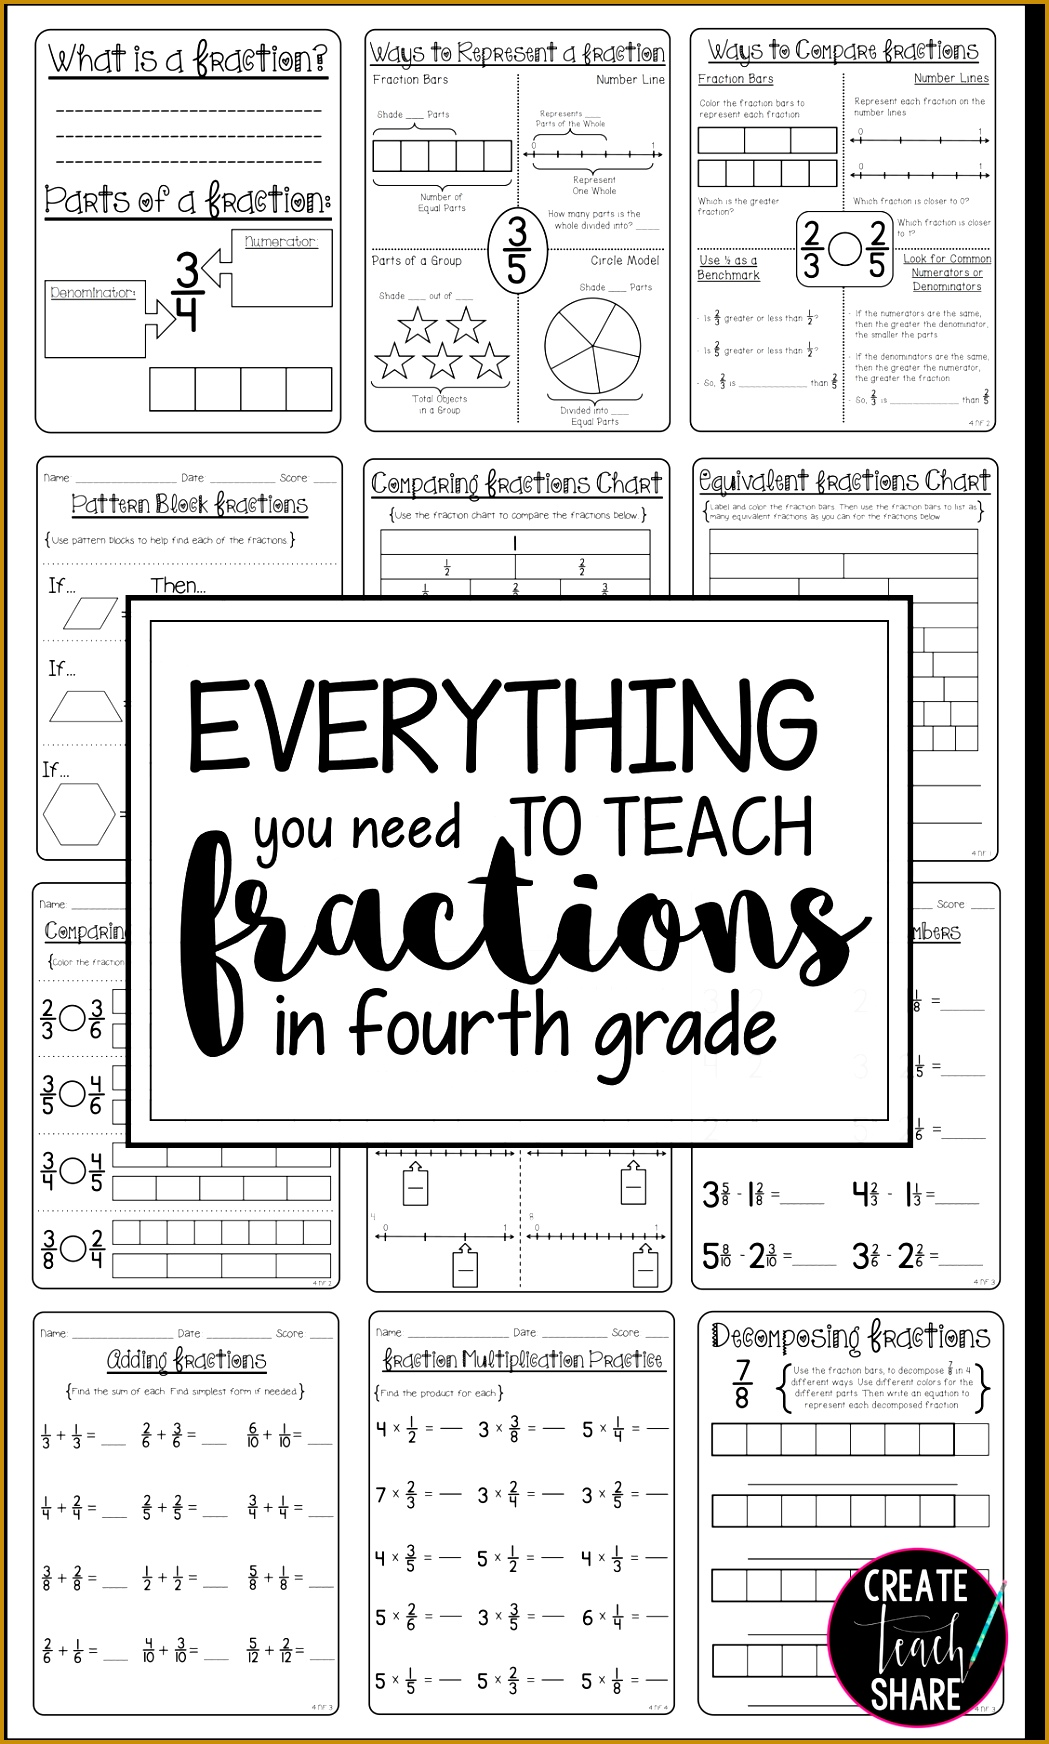 80 pages to help teach fractions in 4th grade 17441049